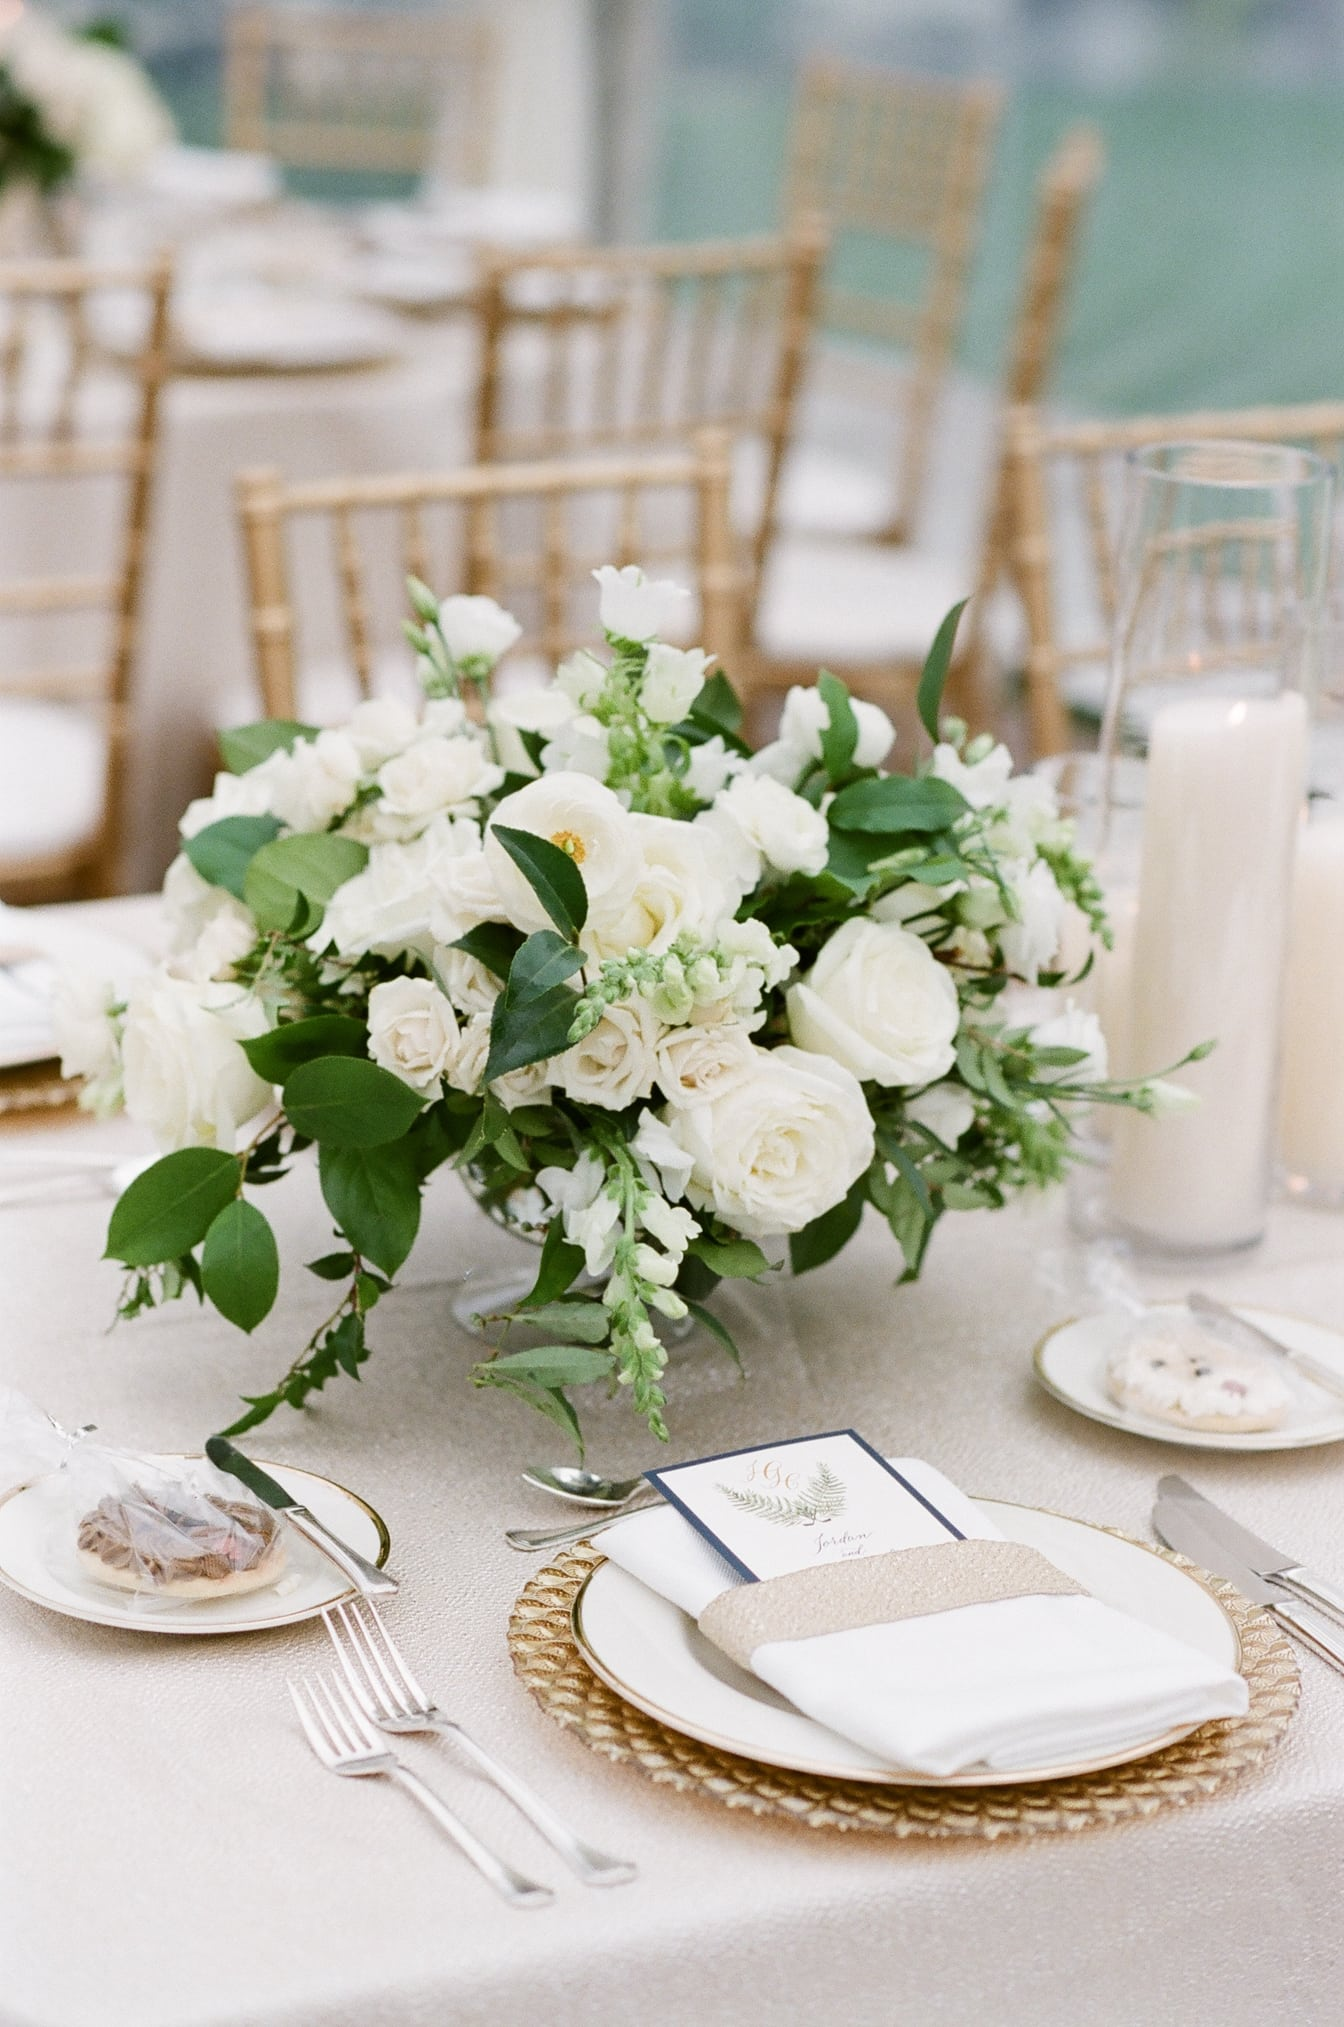 Decorated tablescape with white decor